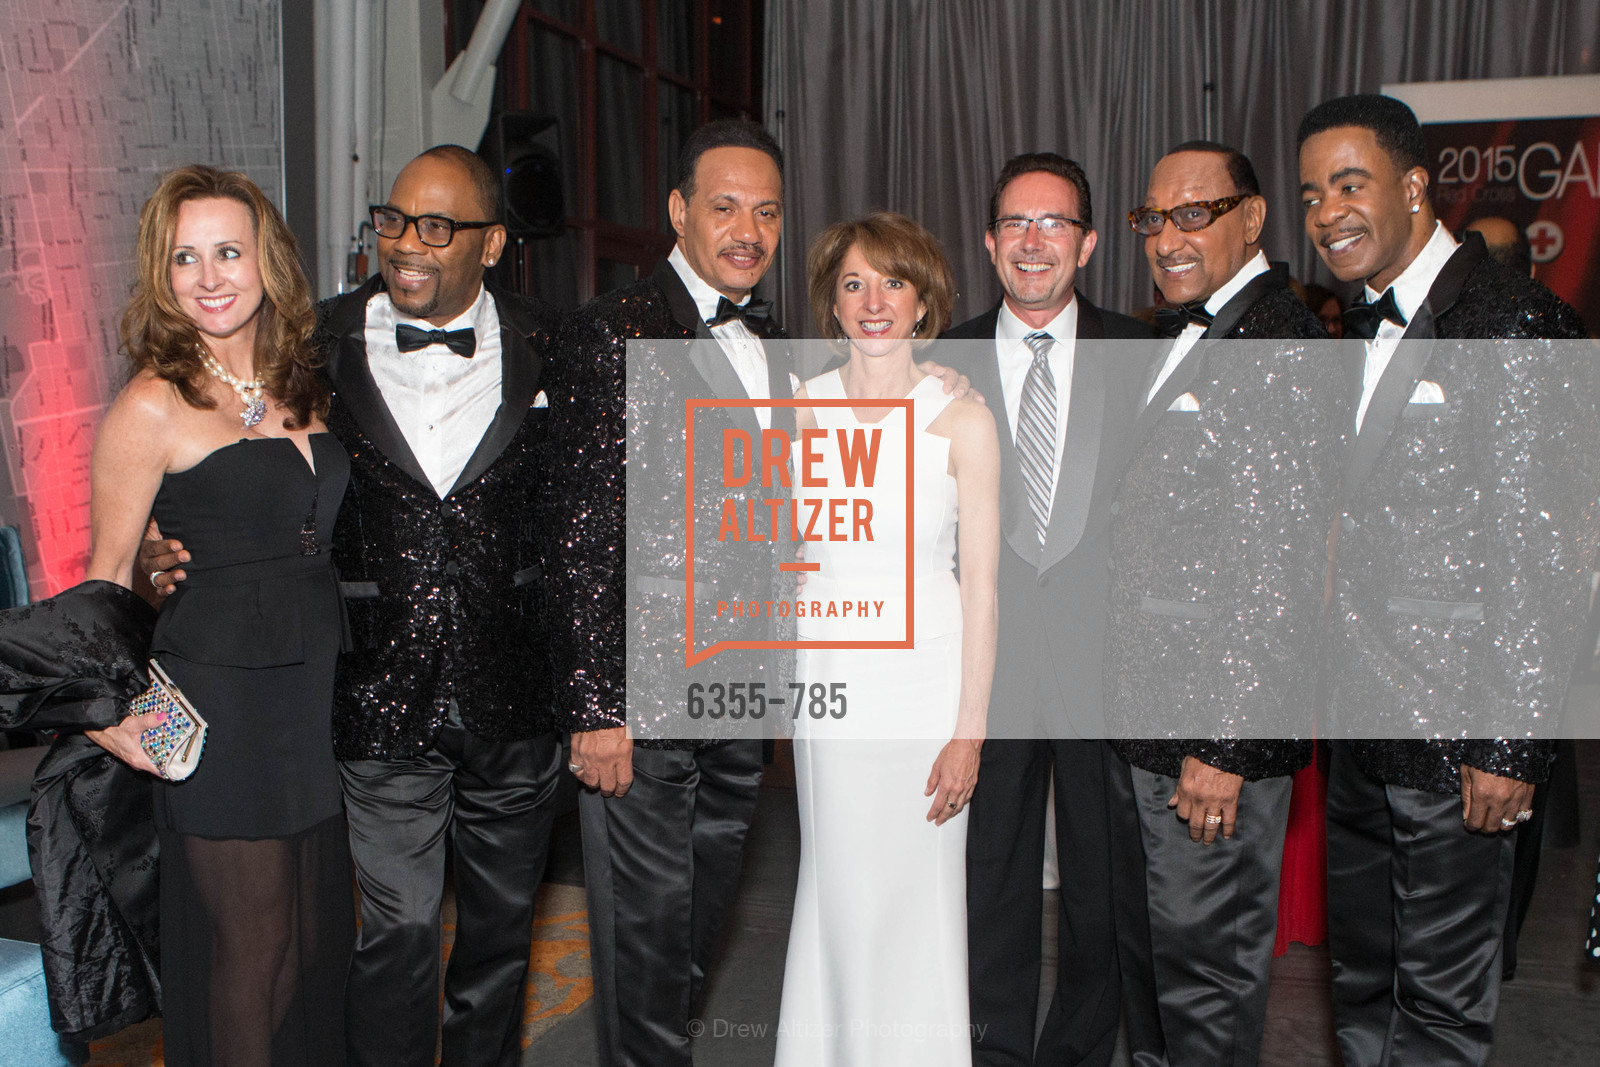 Lawnrence Payton, Ronnie McNair, Teresa Briggs, Duke Fakir, Spike Bonhart, 2015 RED CROSS Gala, US, April 11th, 2015,Drew Altizer, Drew Altizer Photography, full-service agency, private events, San Francisco photographer, photographer california